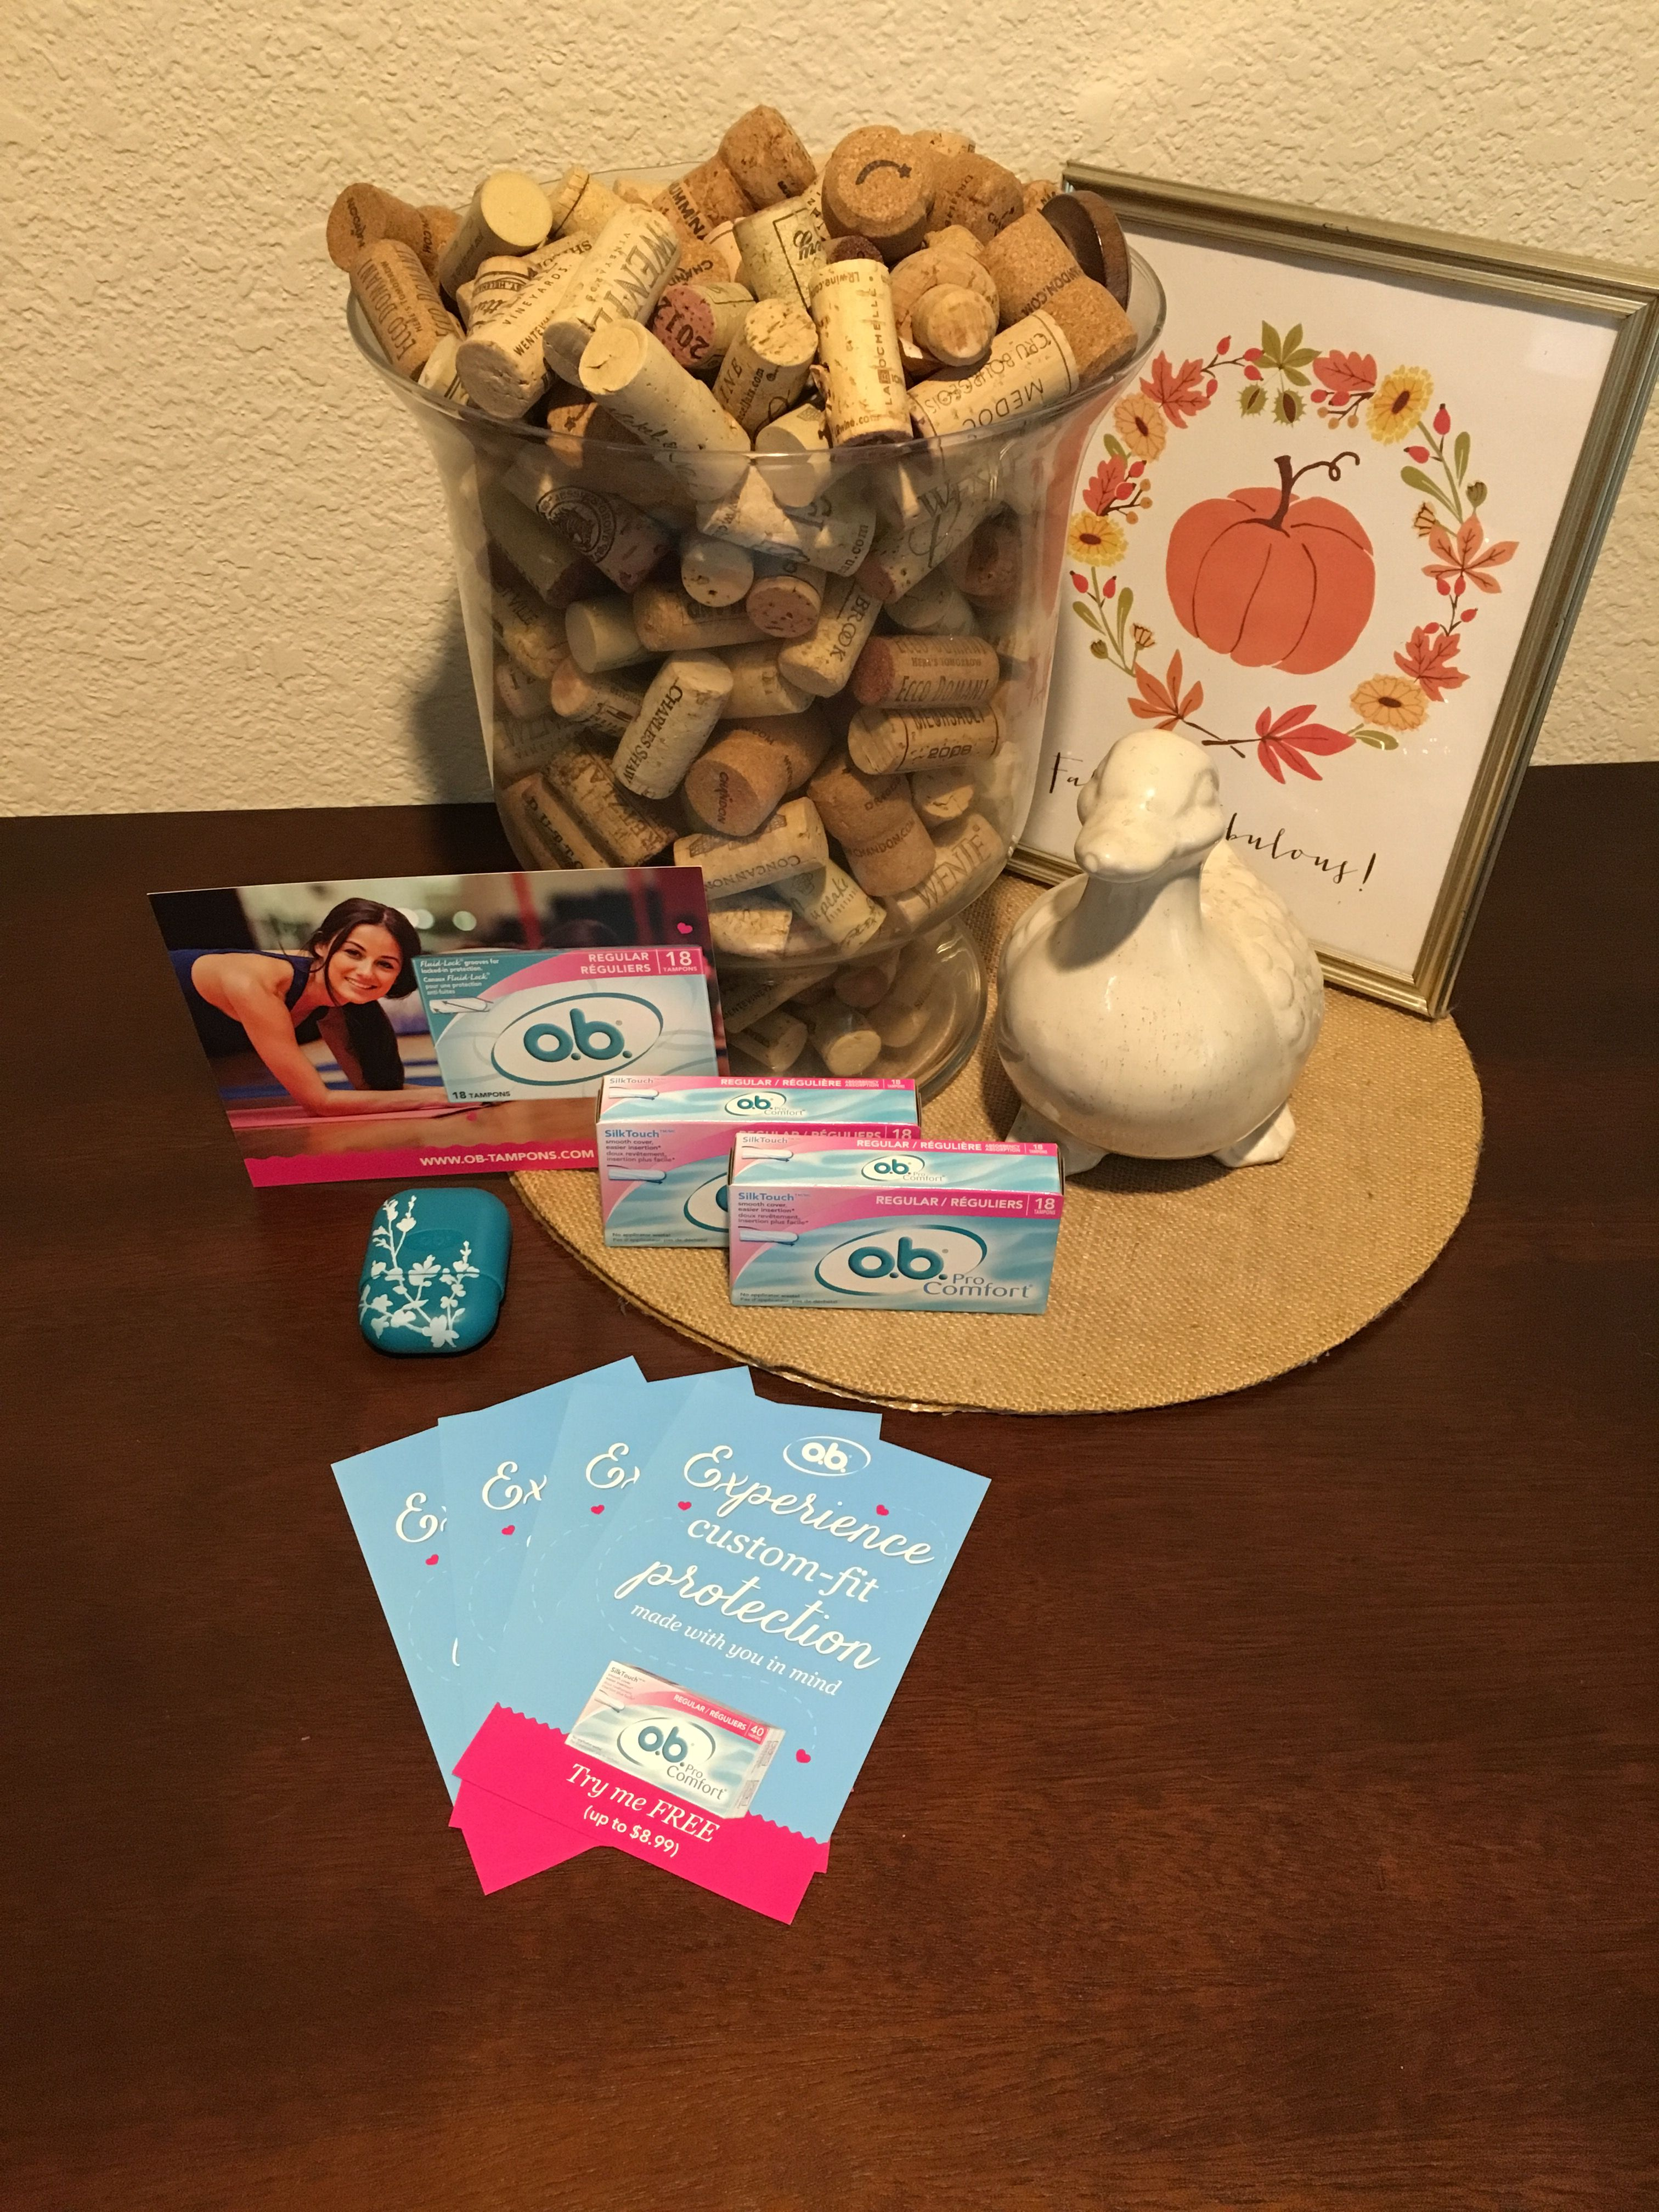 I recently received a complimentary sample of OB Tampons and love